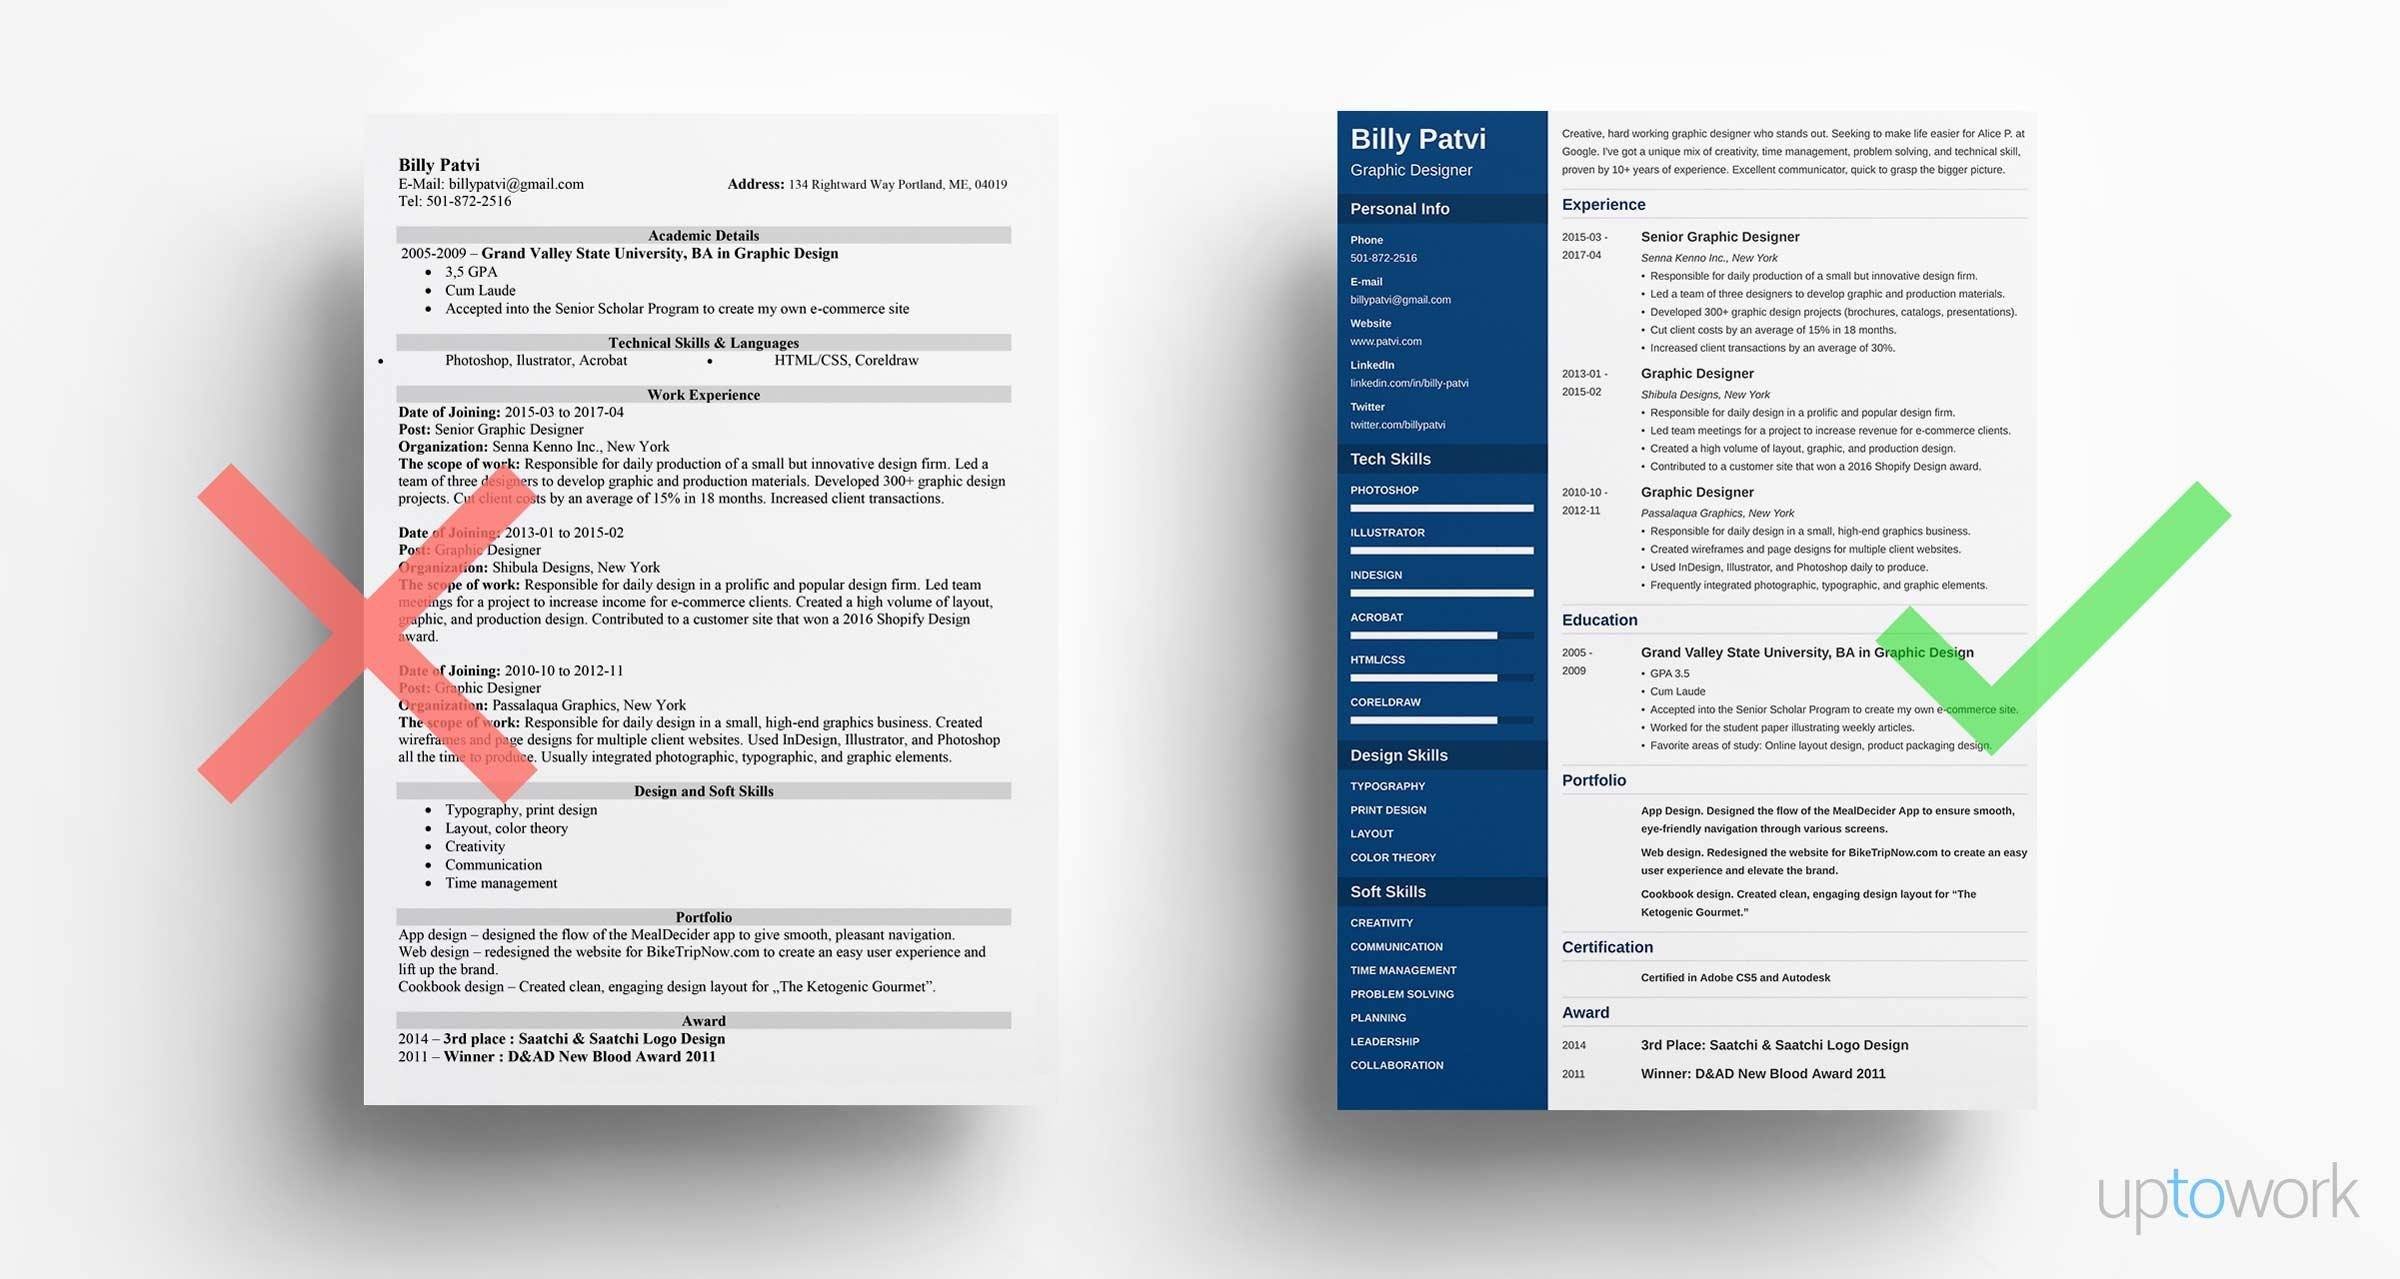 graphic designer resume examples and design tips for best samples objective teachers Resume Best Graphic Designer Resume